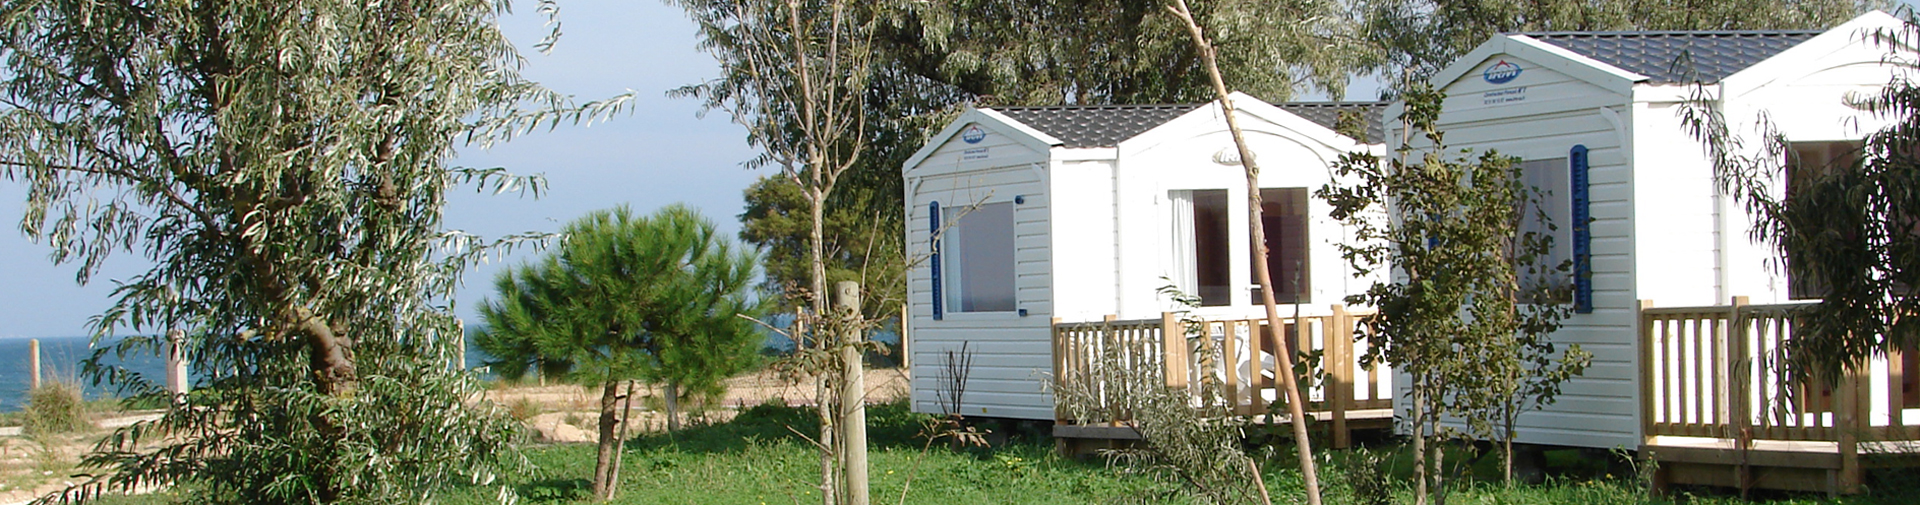 slide-modele-6-location-mobilhome-4-pers-30m2-camping-oleron